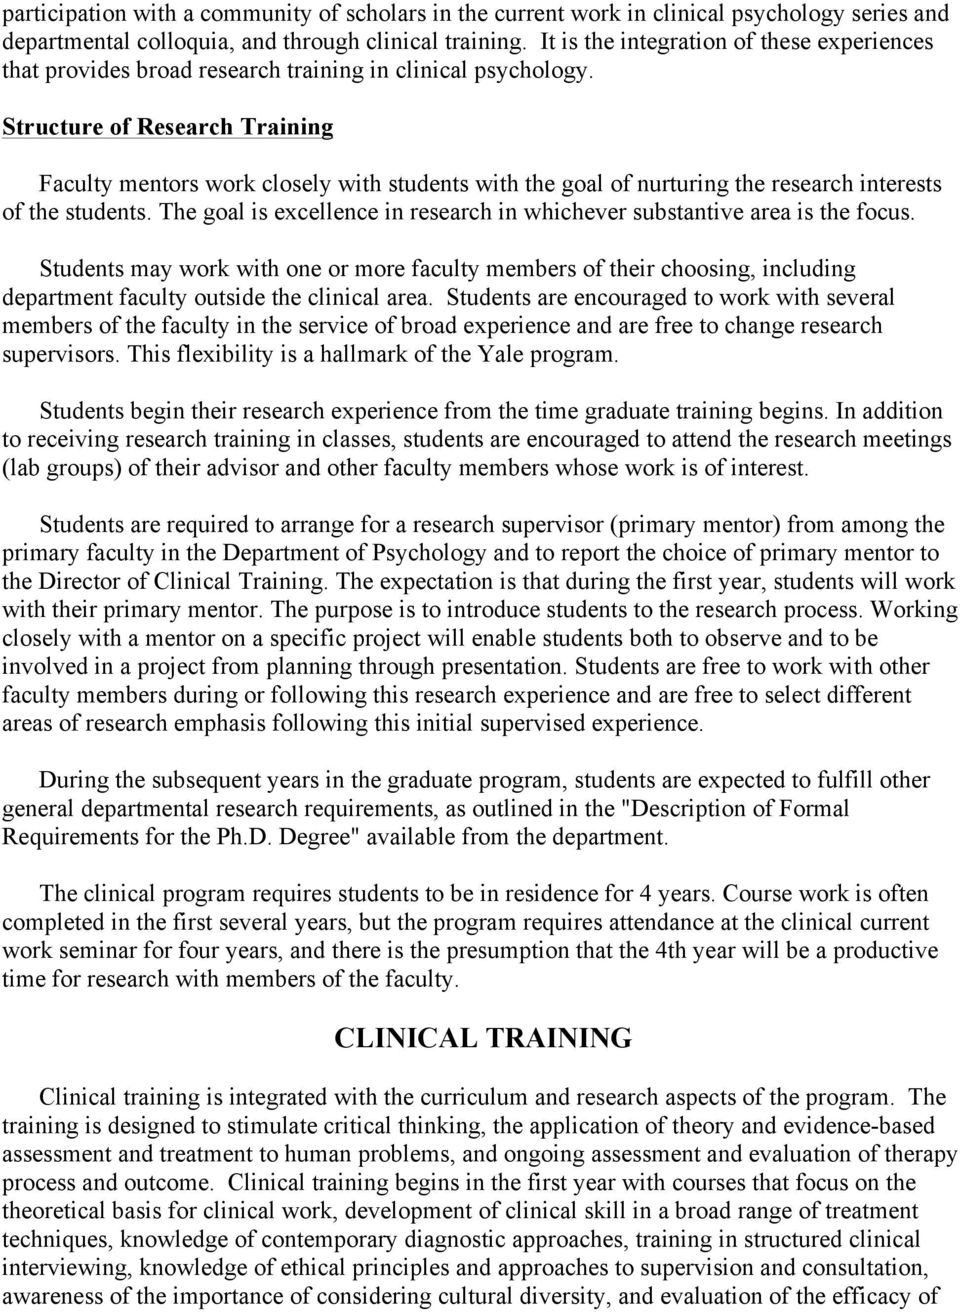 YALE CLINICAL PSYCHOLOGY: TRAINING MISSION AND PROGRAM